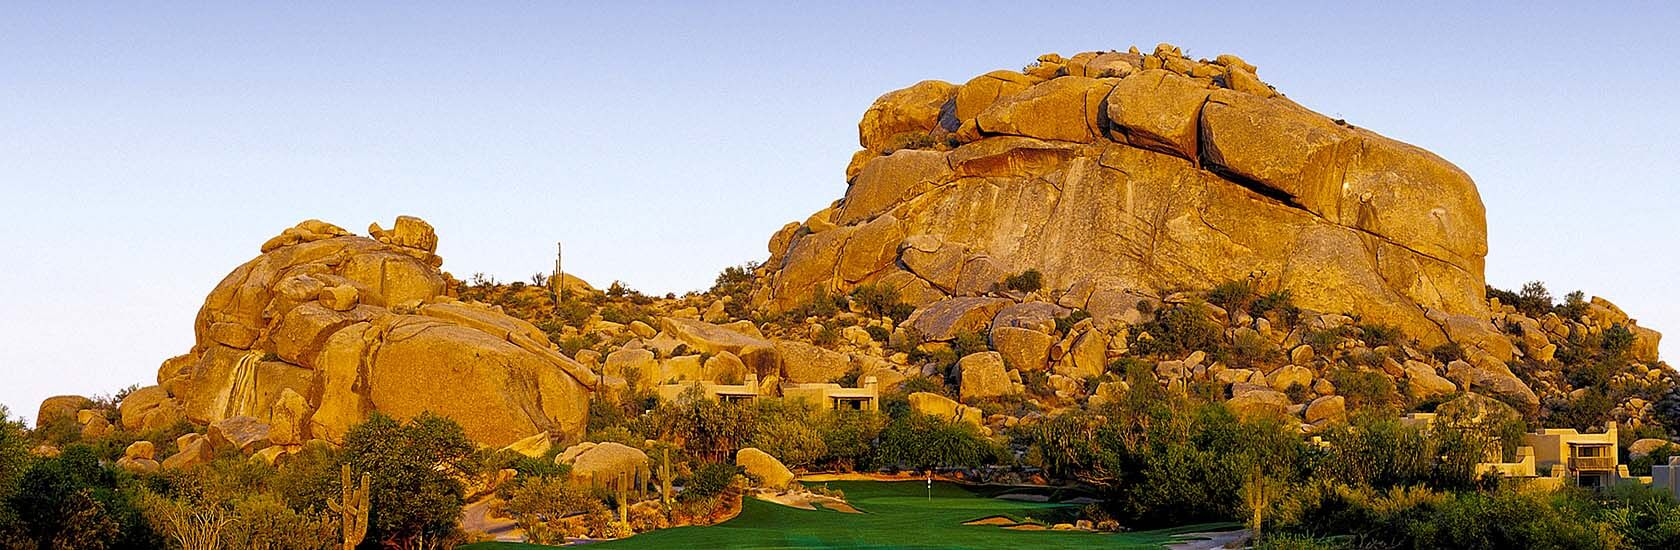 The Boulders, A Curio Collection Resort in Scottsdale